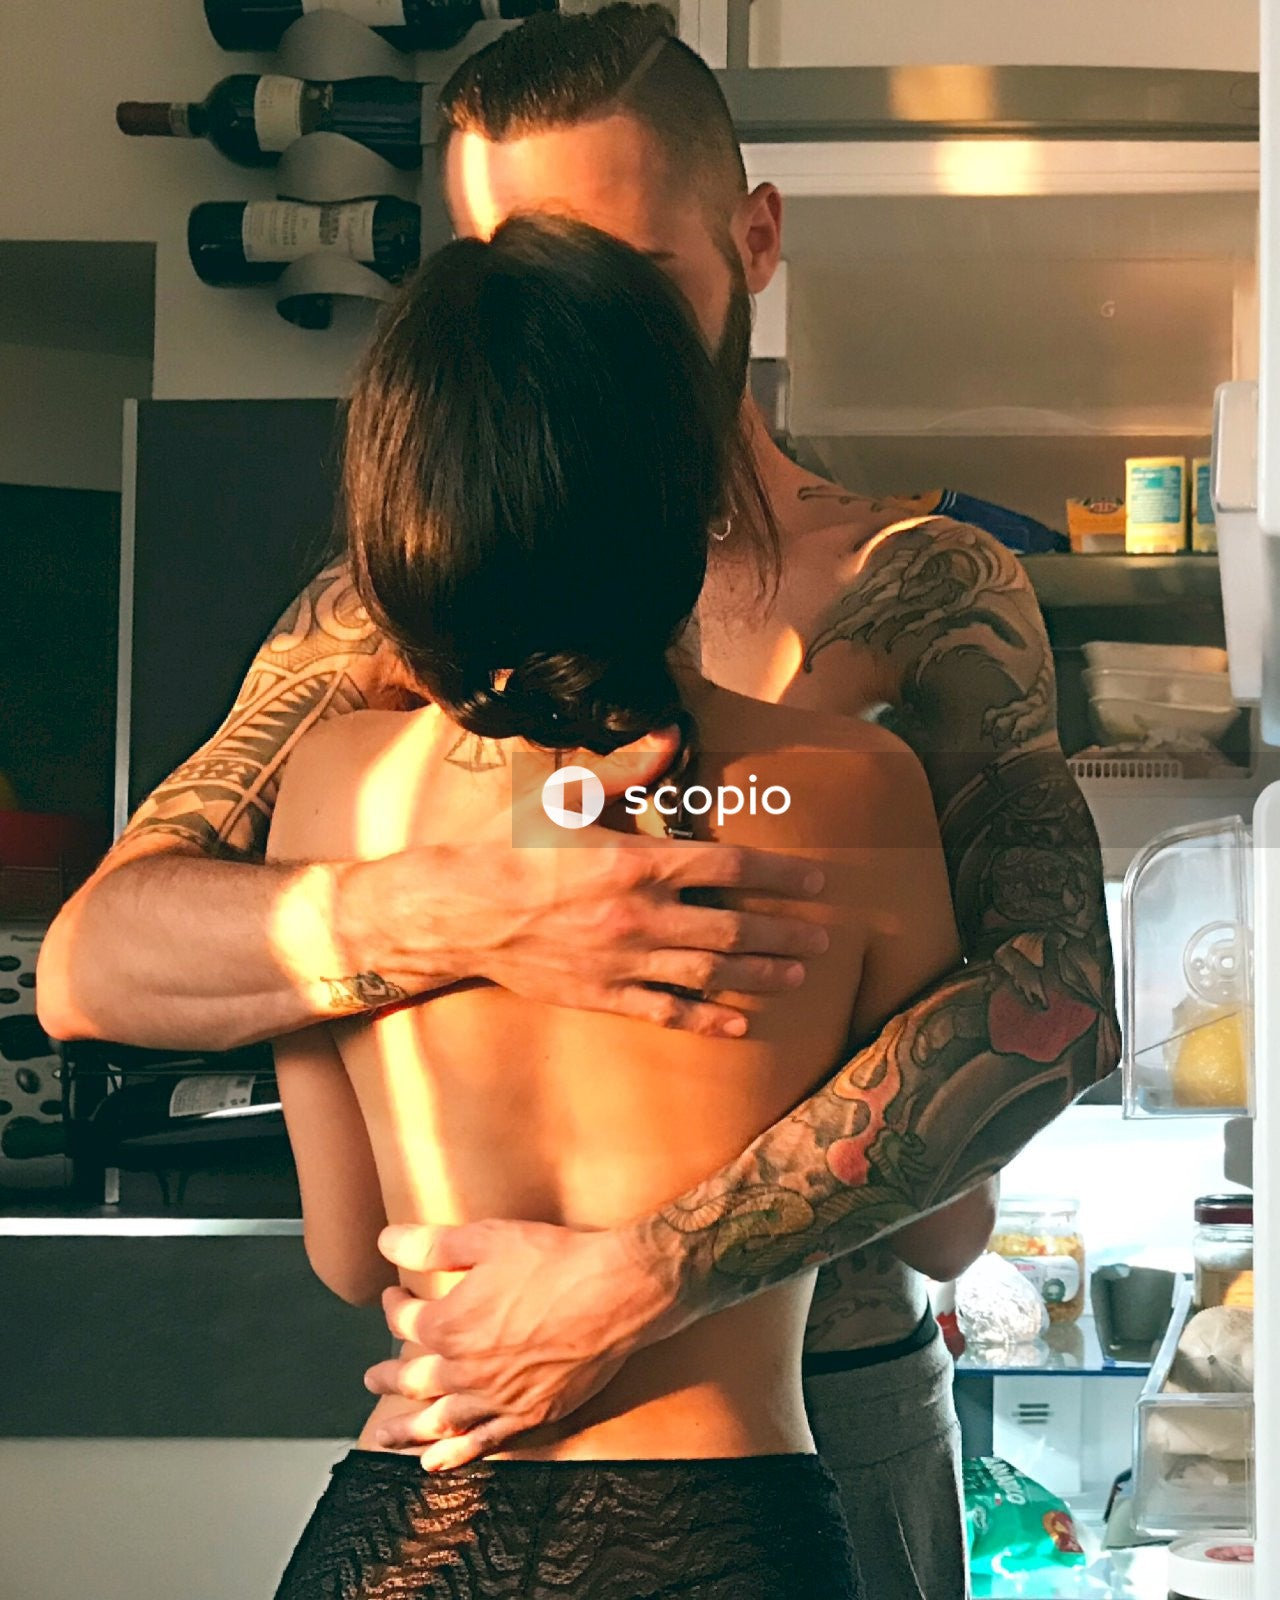 Topless man and woman hugging while facing each other